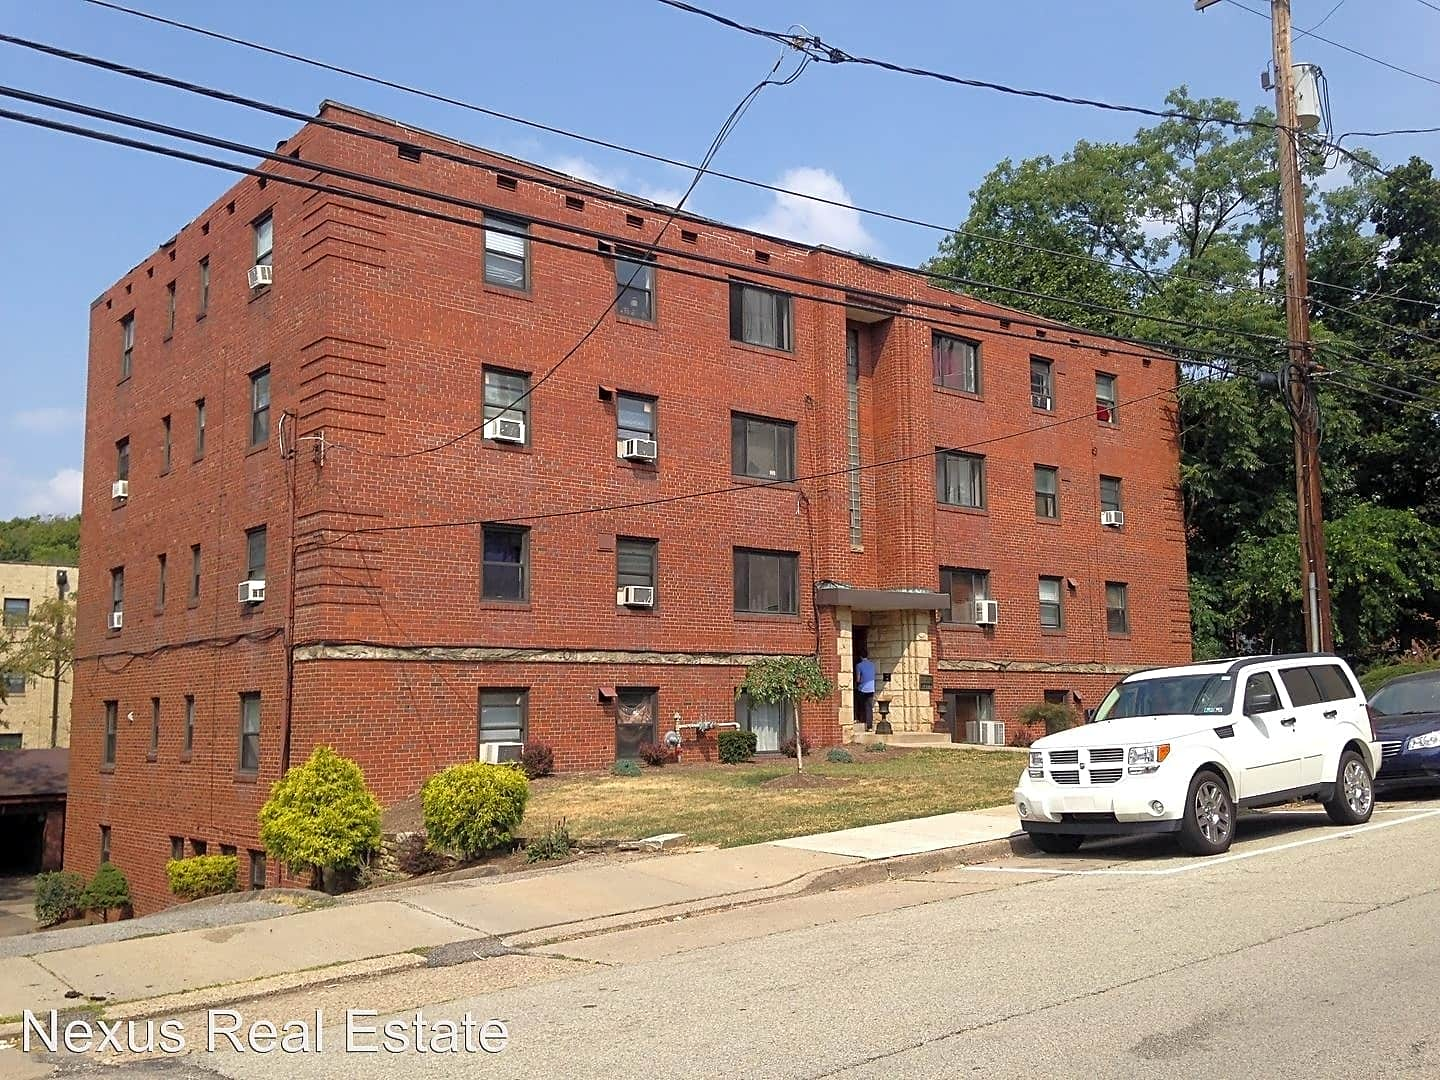 Apartments For Sale In Pittsburgh Pennsylvania